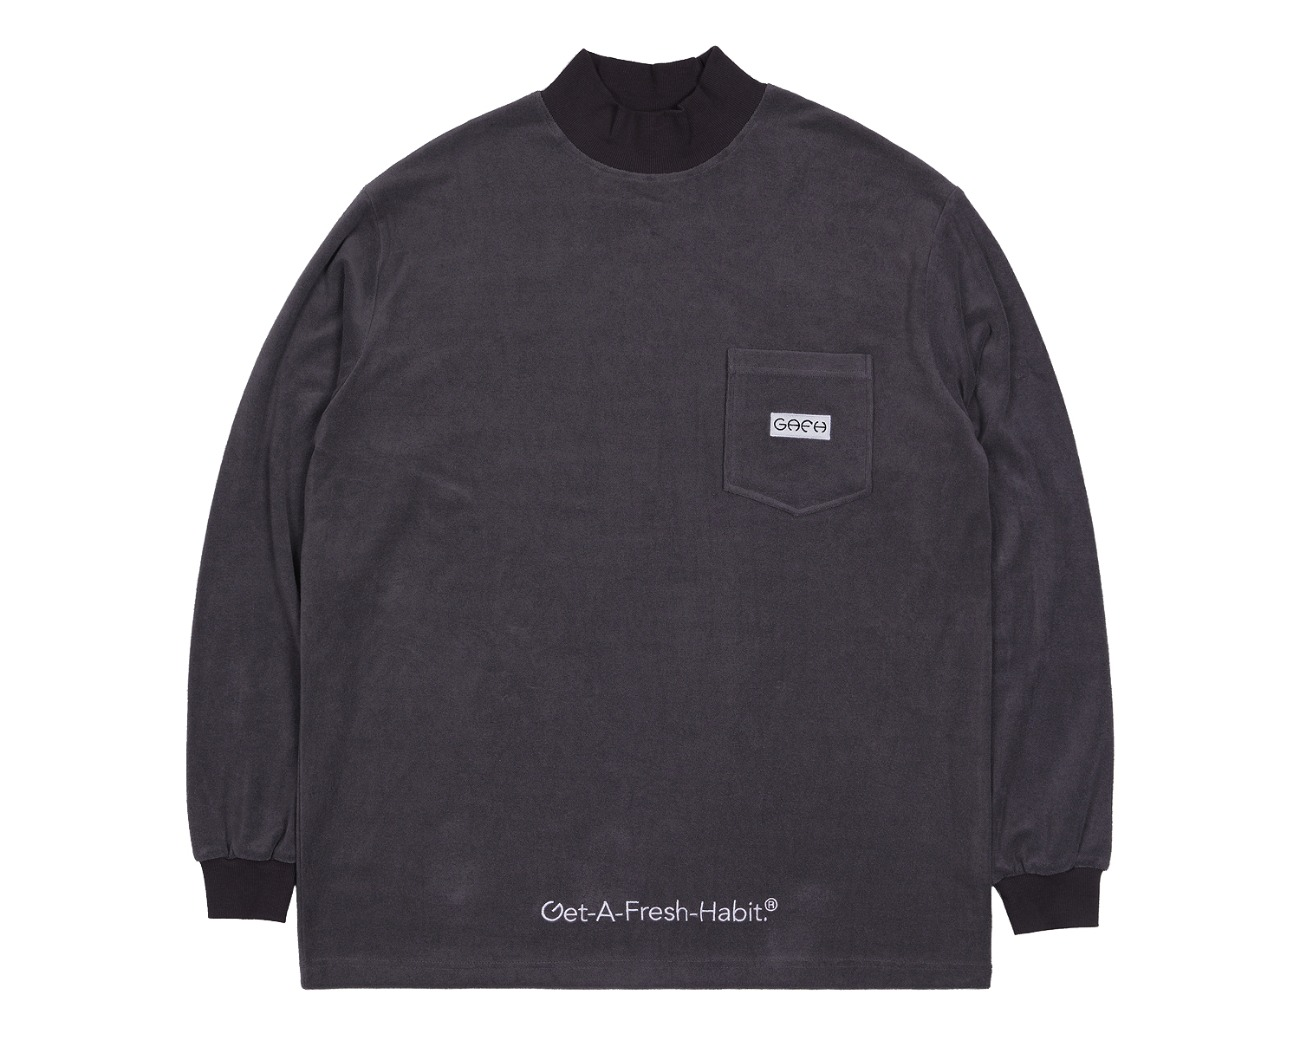 TERRY MOCK NECK GRAY / GAFH